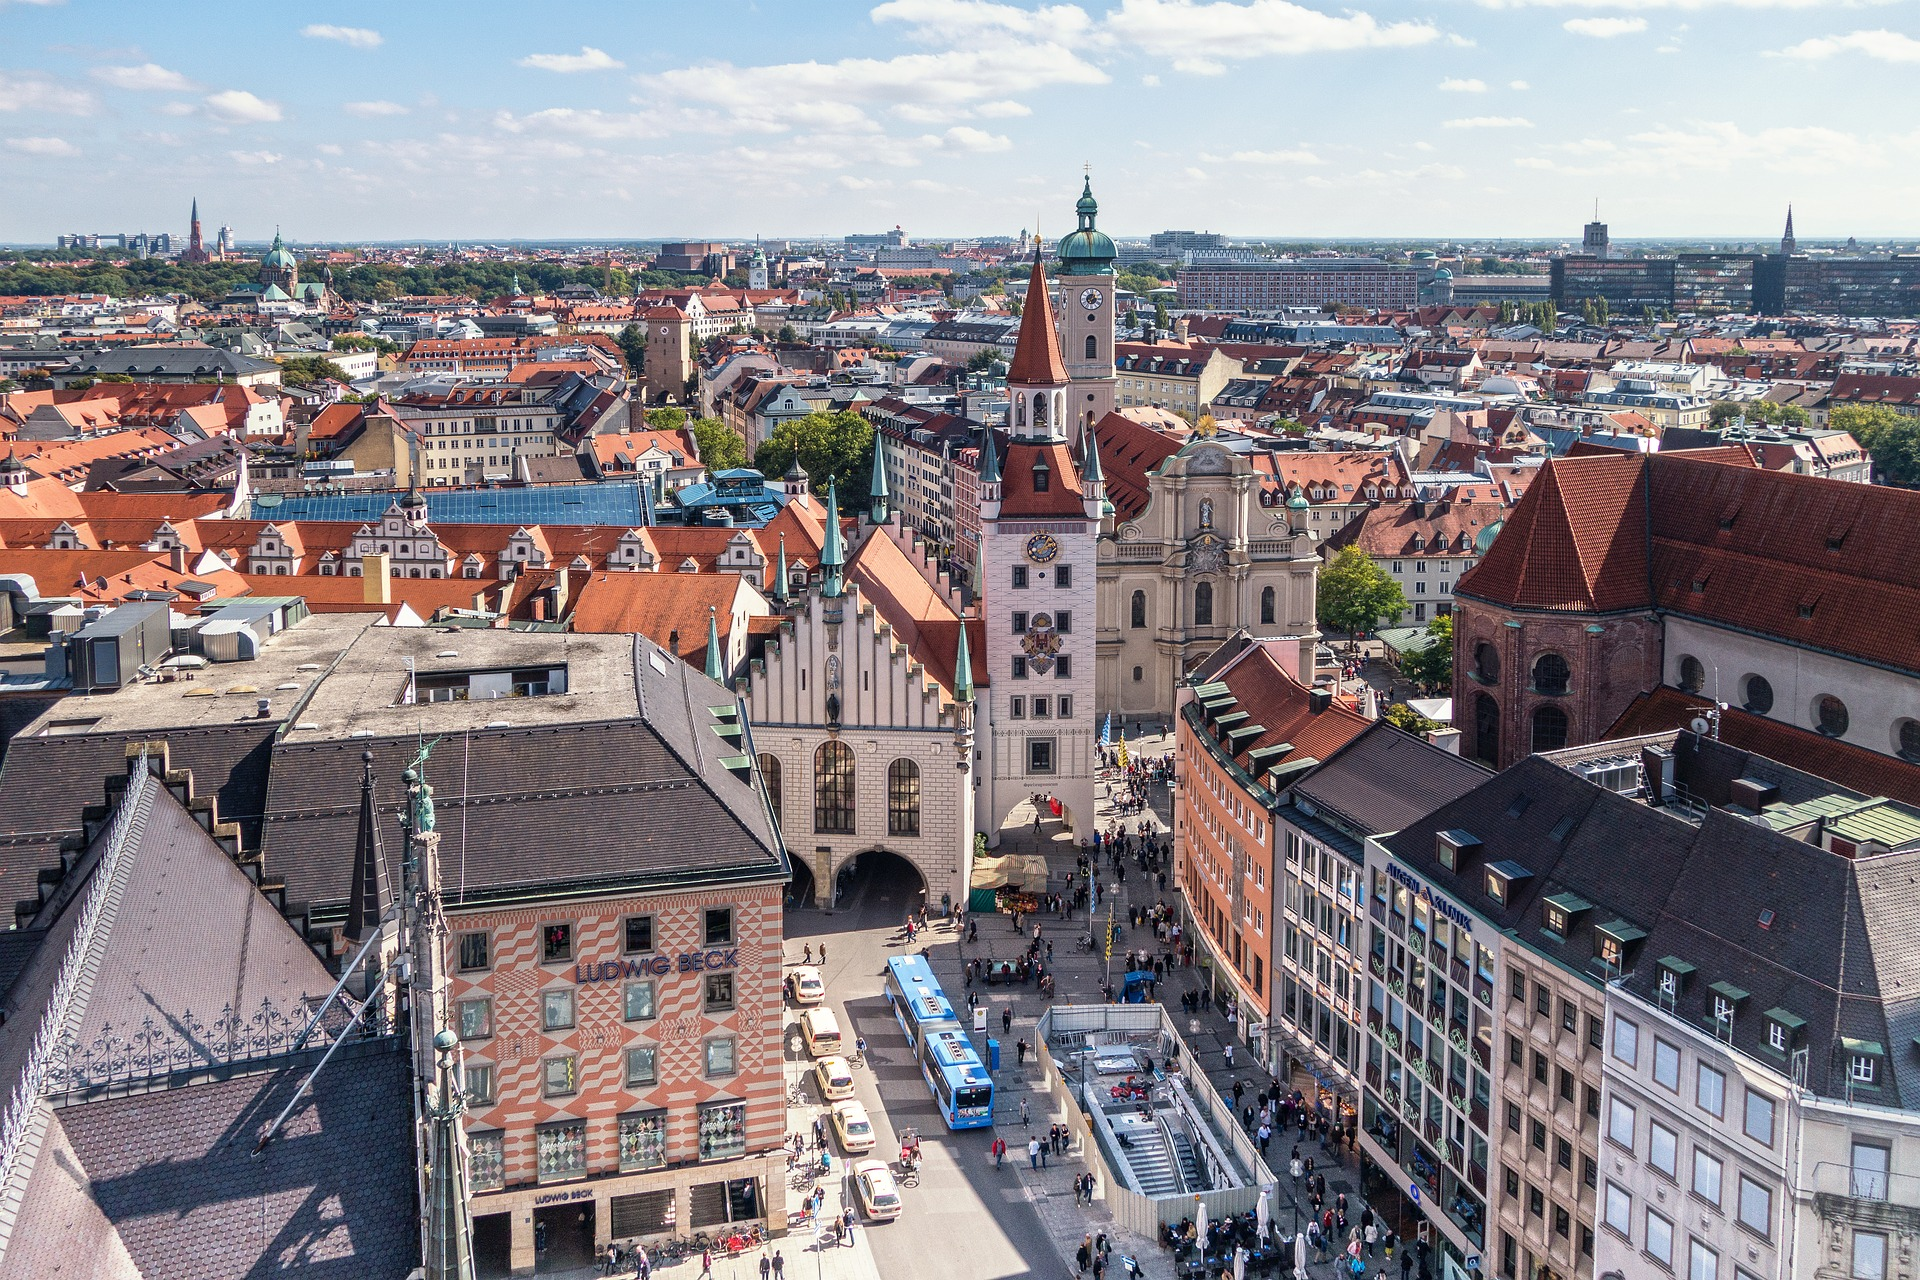 Top Attractions And Things To Do In Munich, Germany